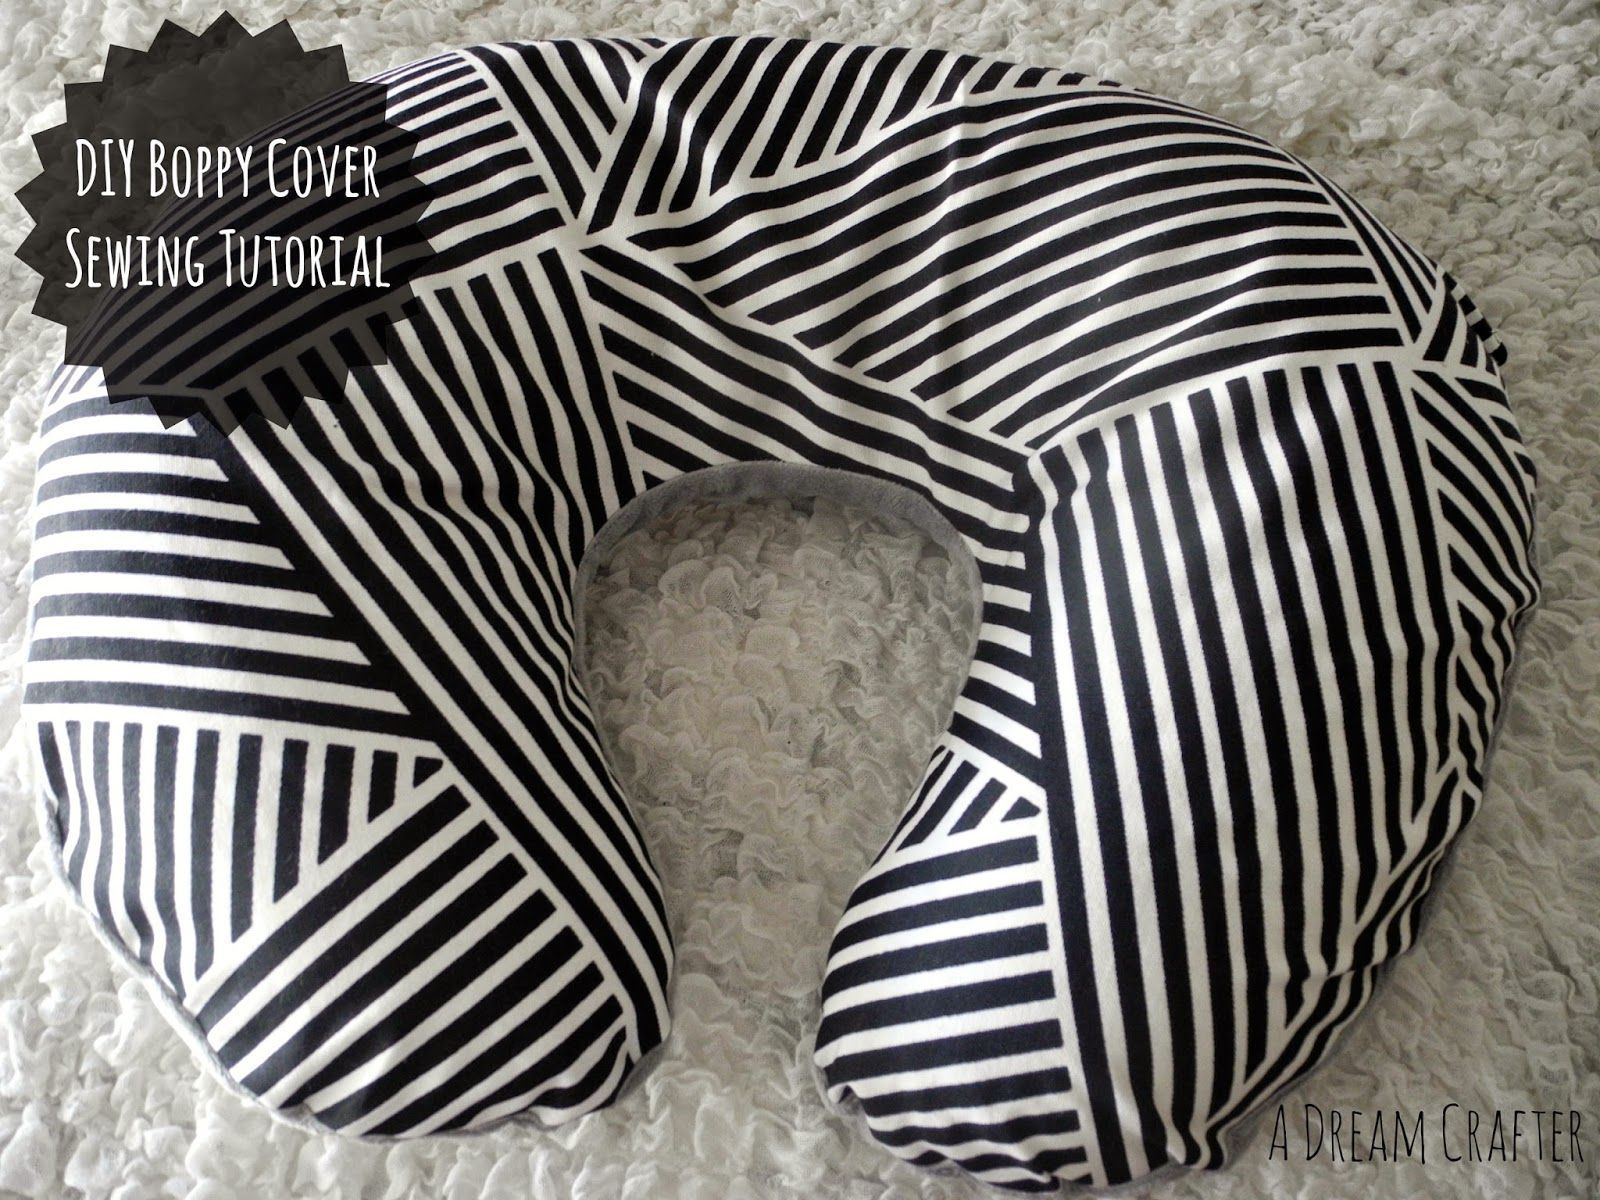 Boppy Cover Sewing Tutorial: Dream Crafter | Boppy cover, Tutorials ...